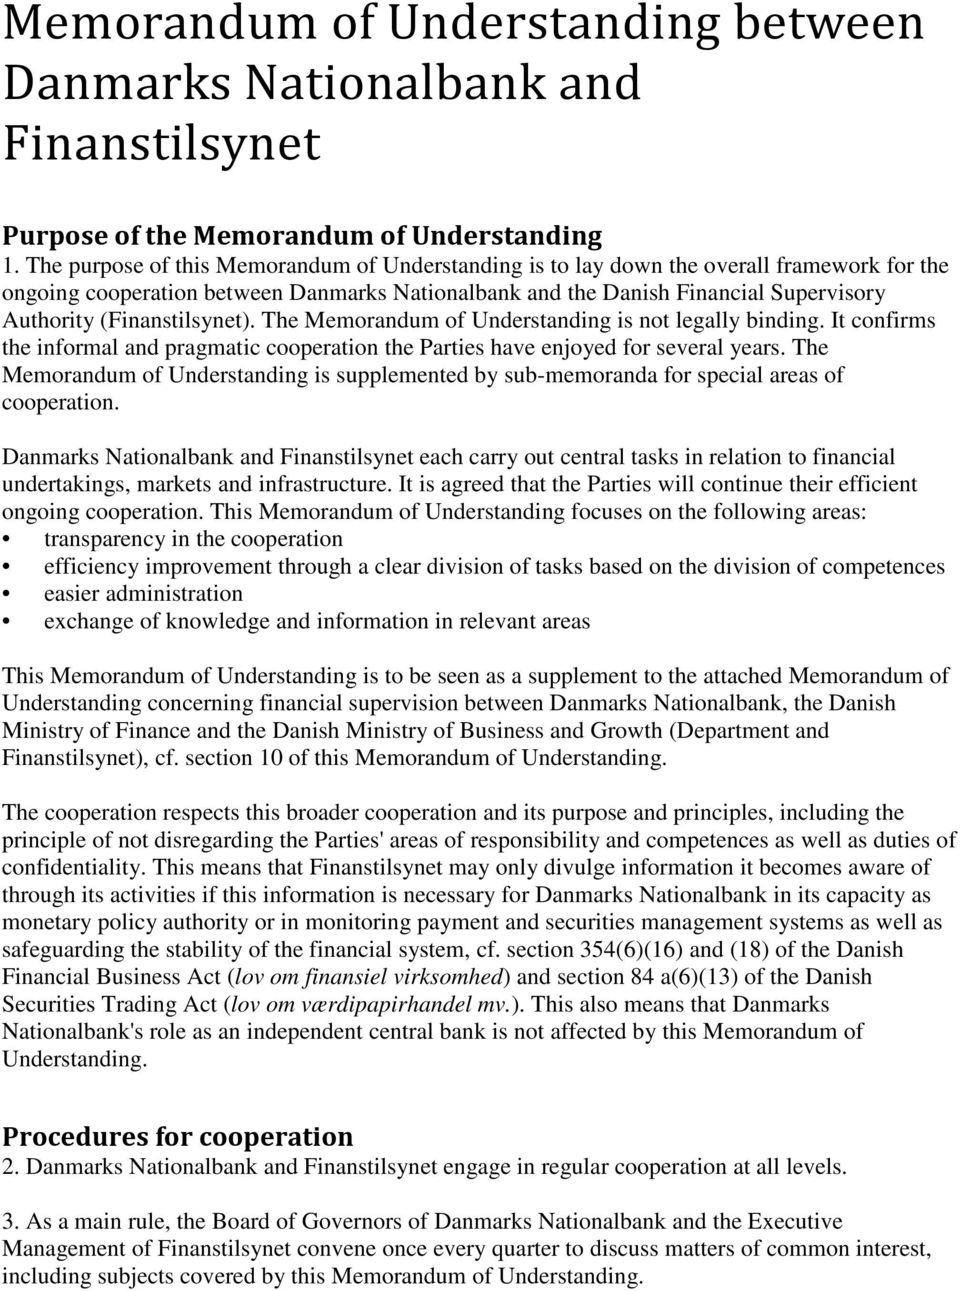 (Finanstilsynet). The Memorandum of Understanding is not legally binding. It confirms the informal and pragmatic cooperation the Parties have enjoyed for several years.